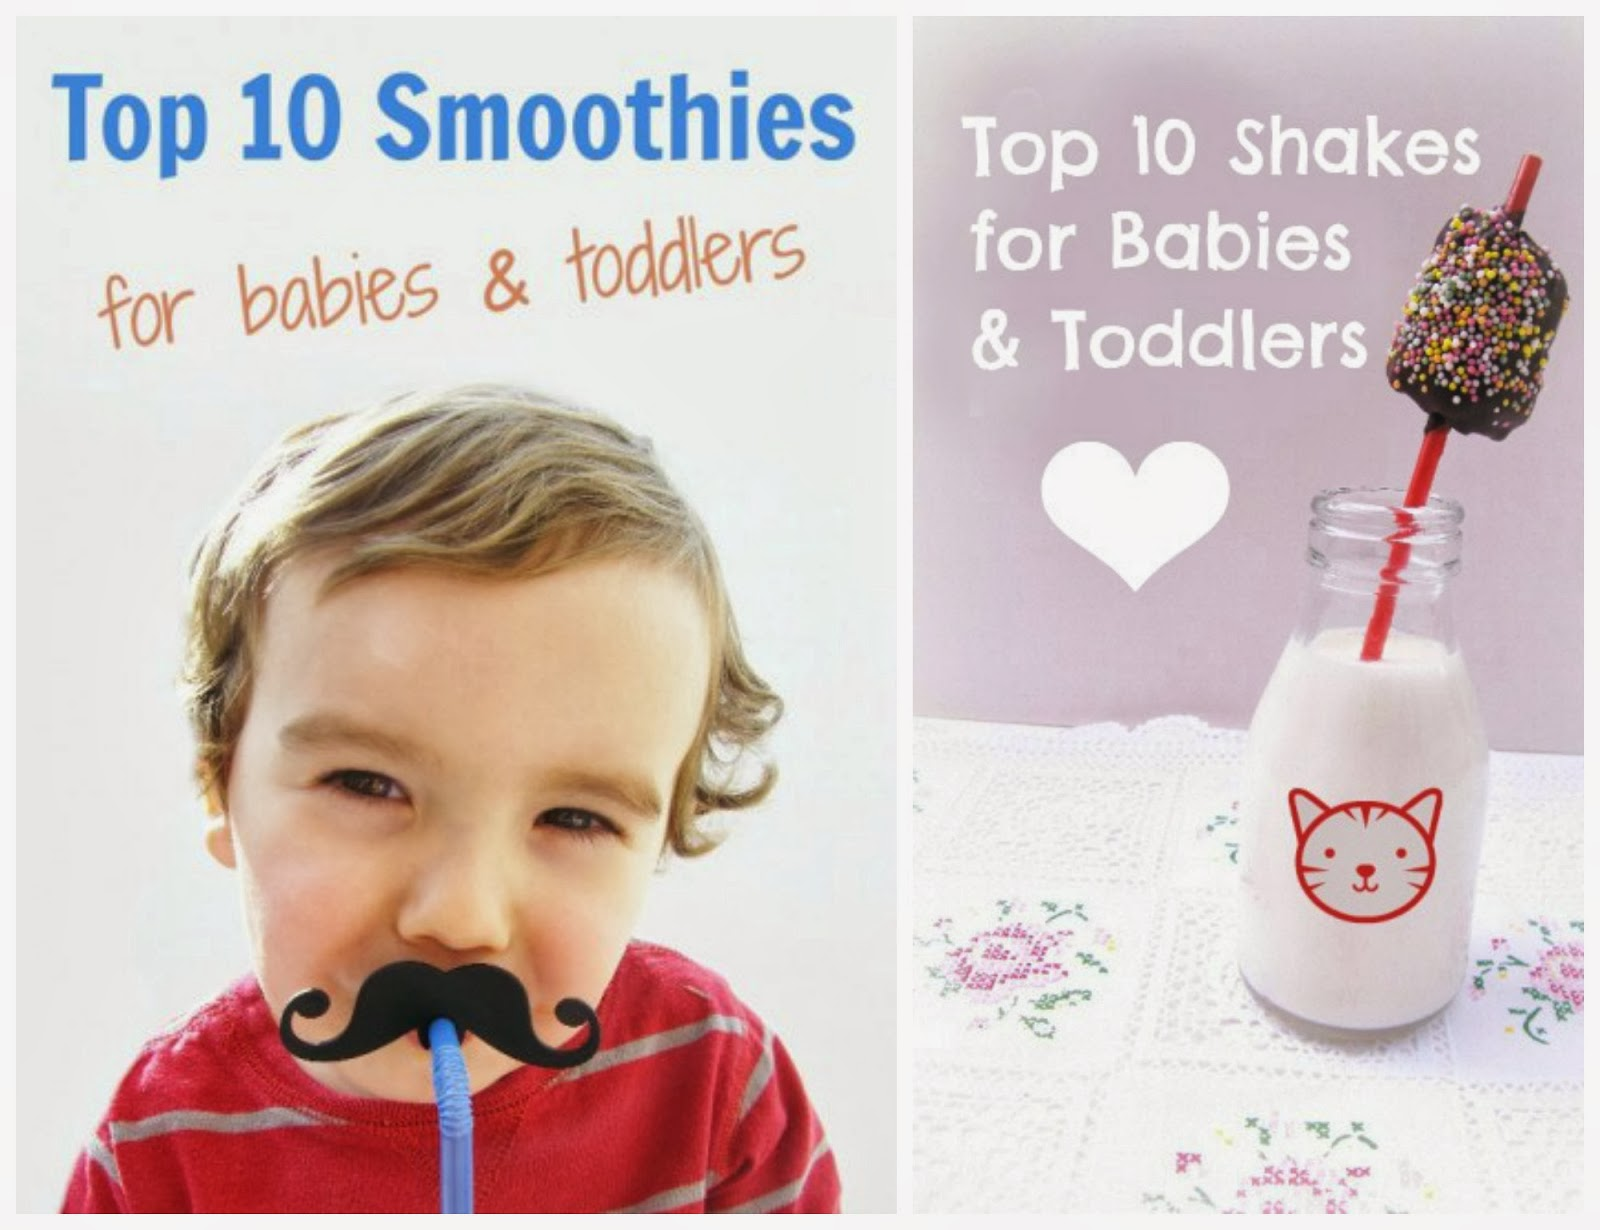 Top 10 Smoothies